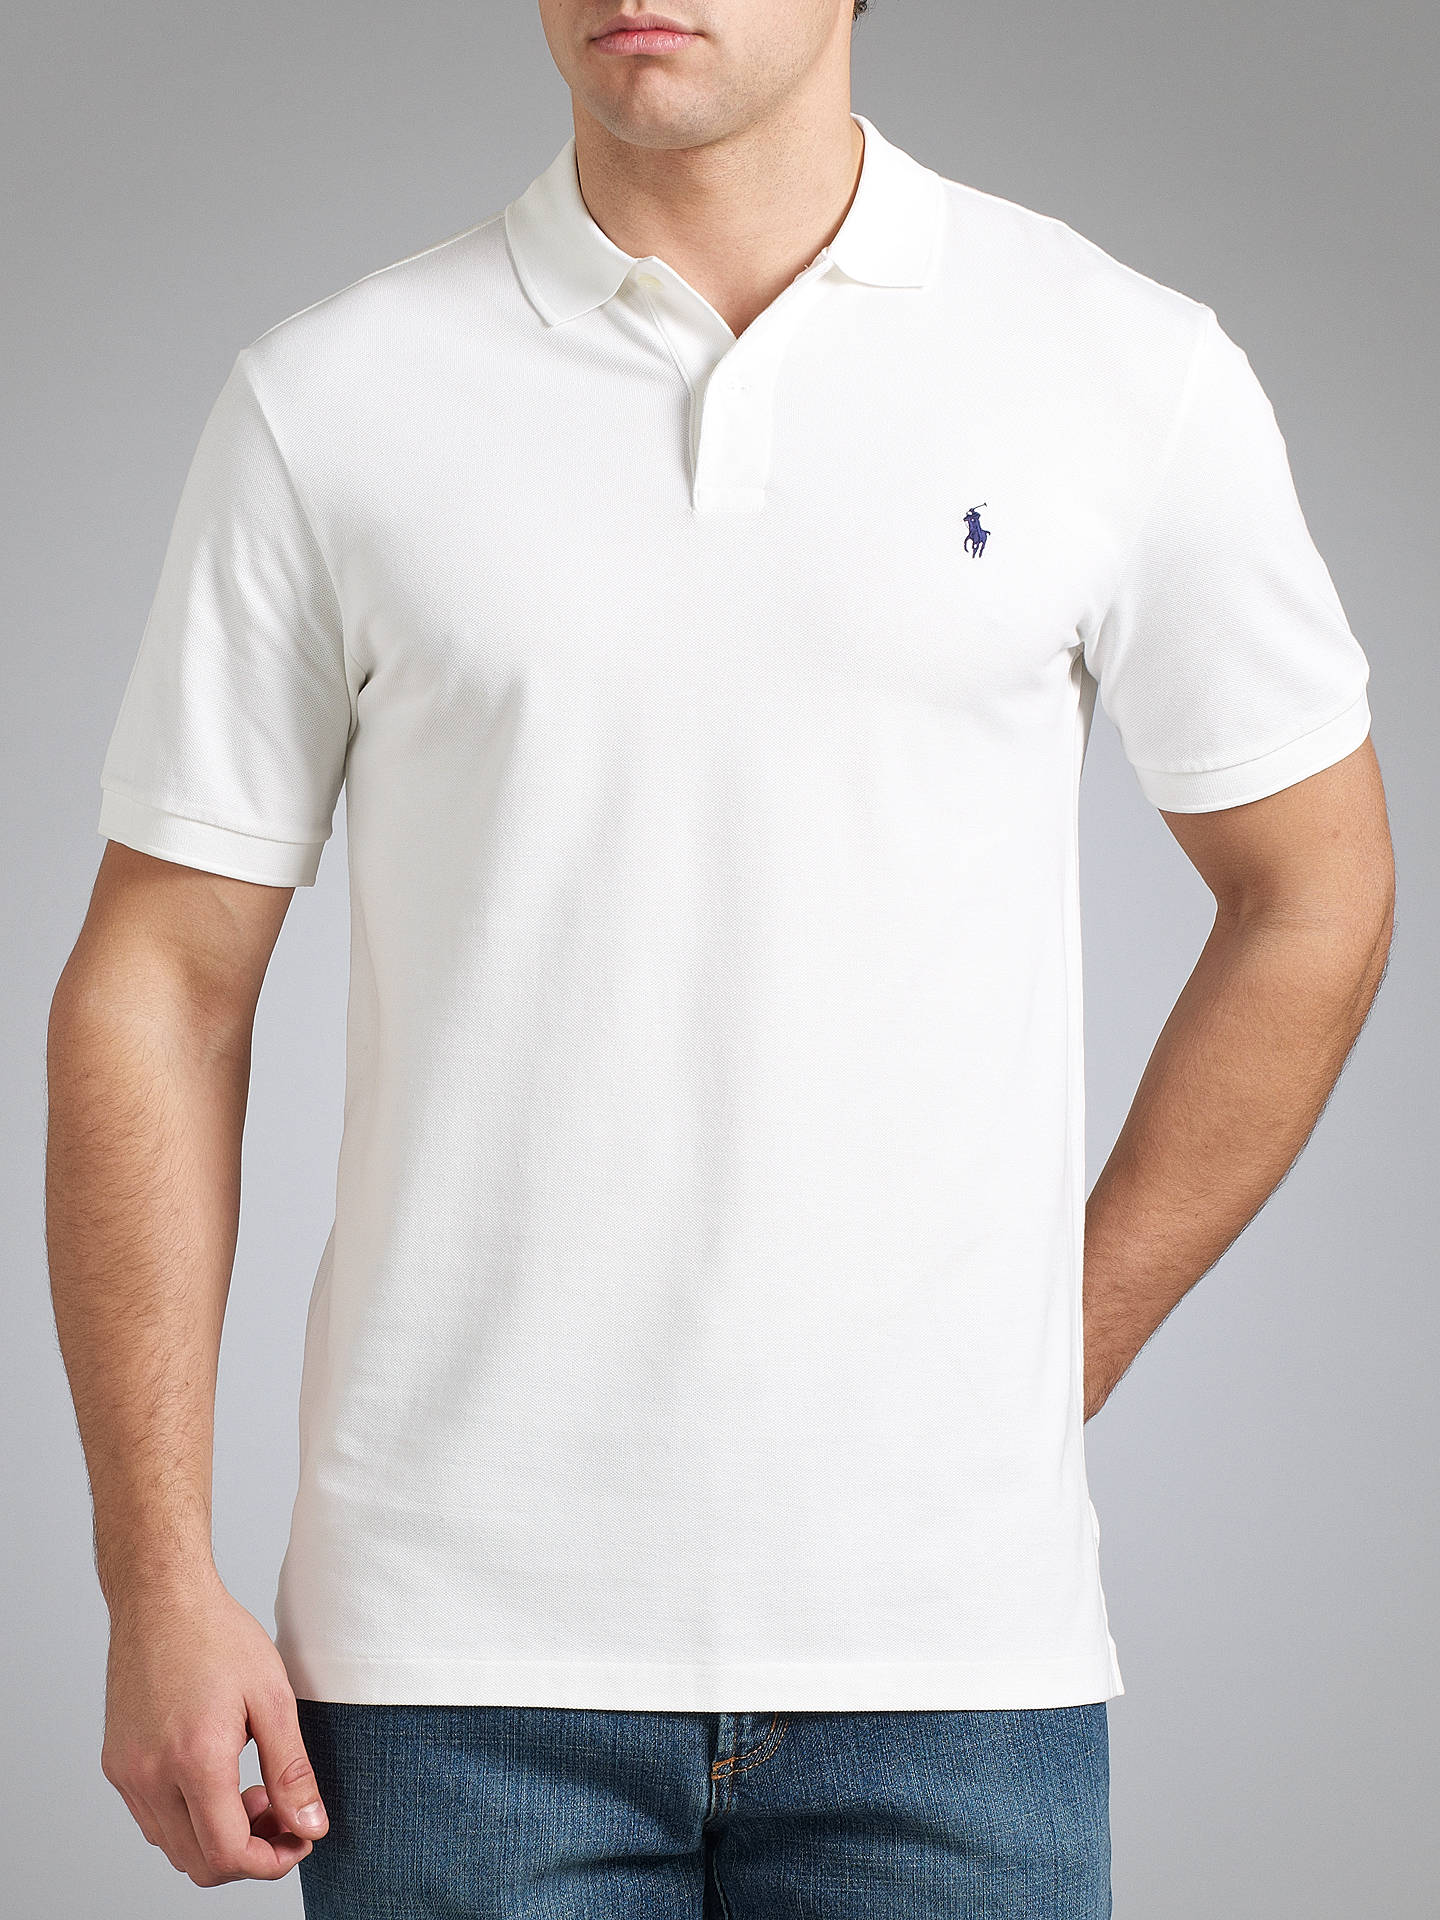 f17d148f1 ... Buy Polo Golf by Ralph Lauren Pro-Fit Polo Shirt, White, M Online ...